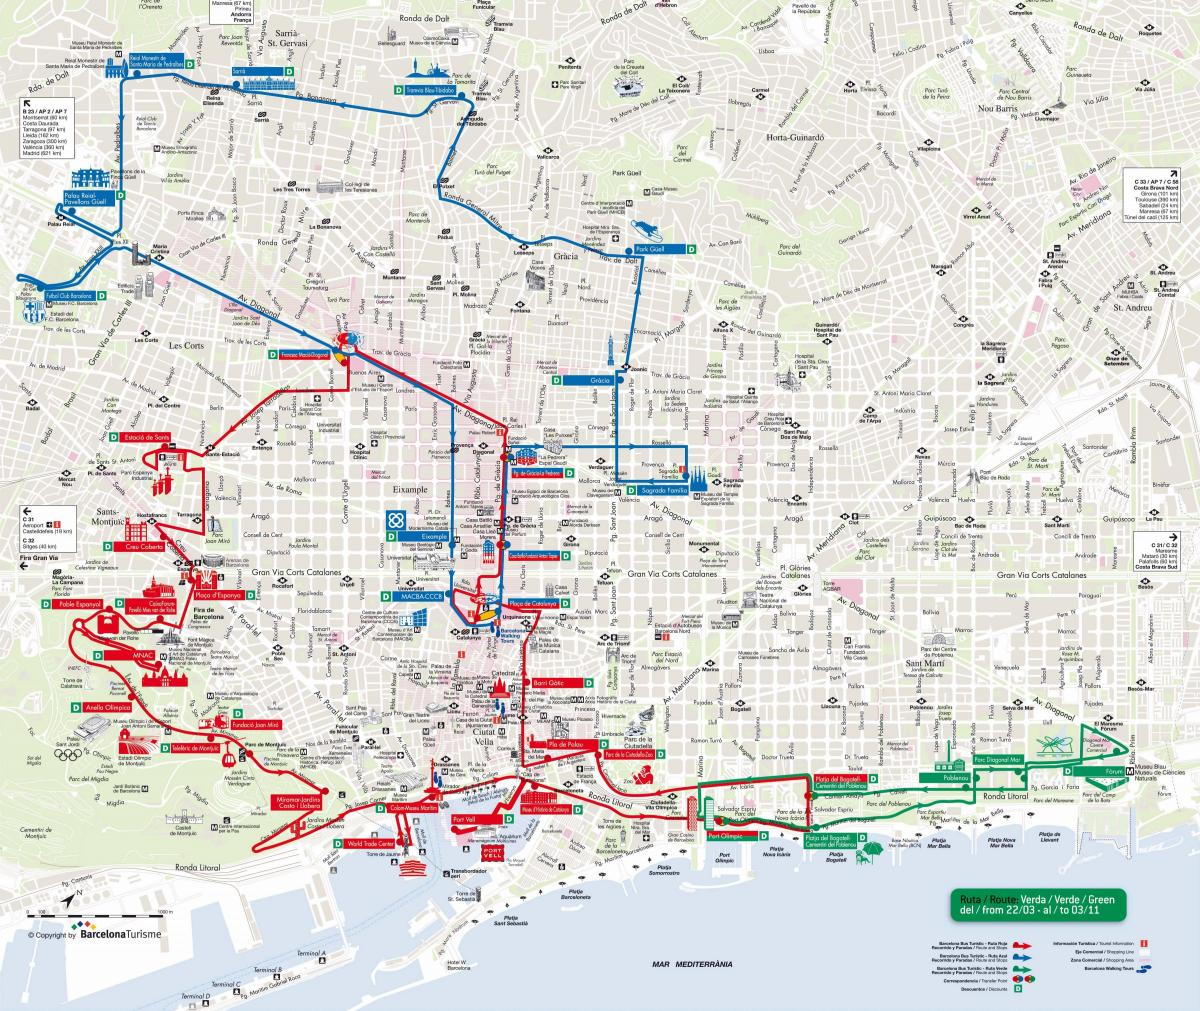 barcelona bus turistic red line map